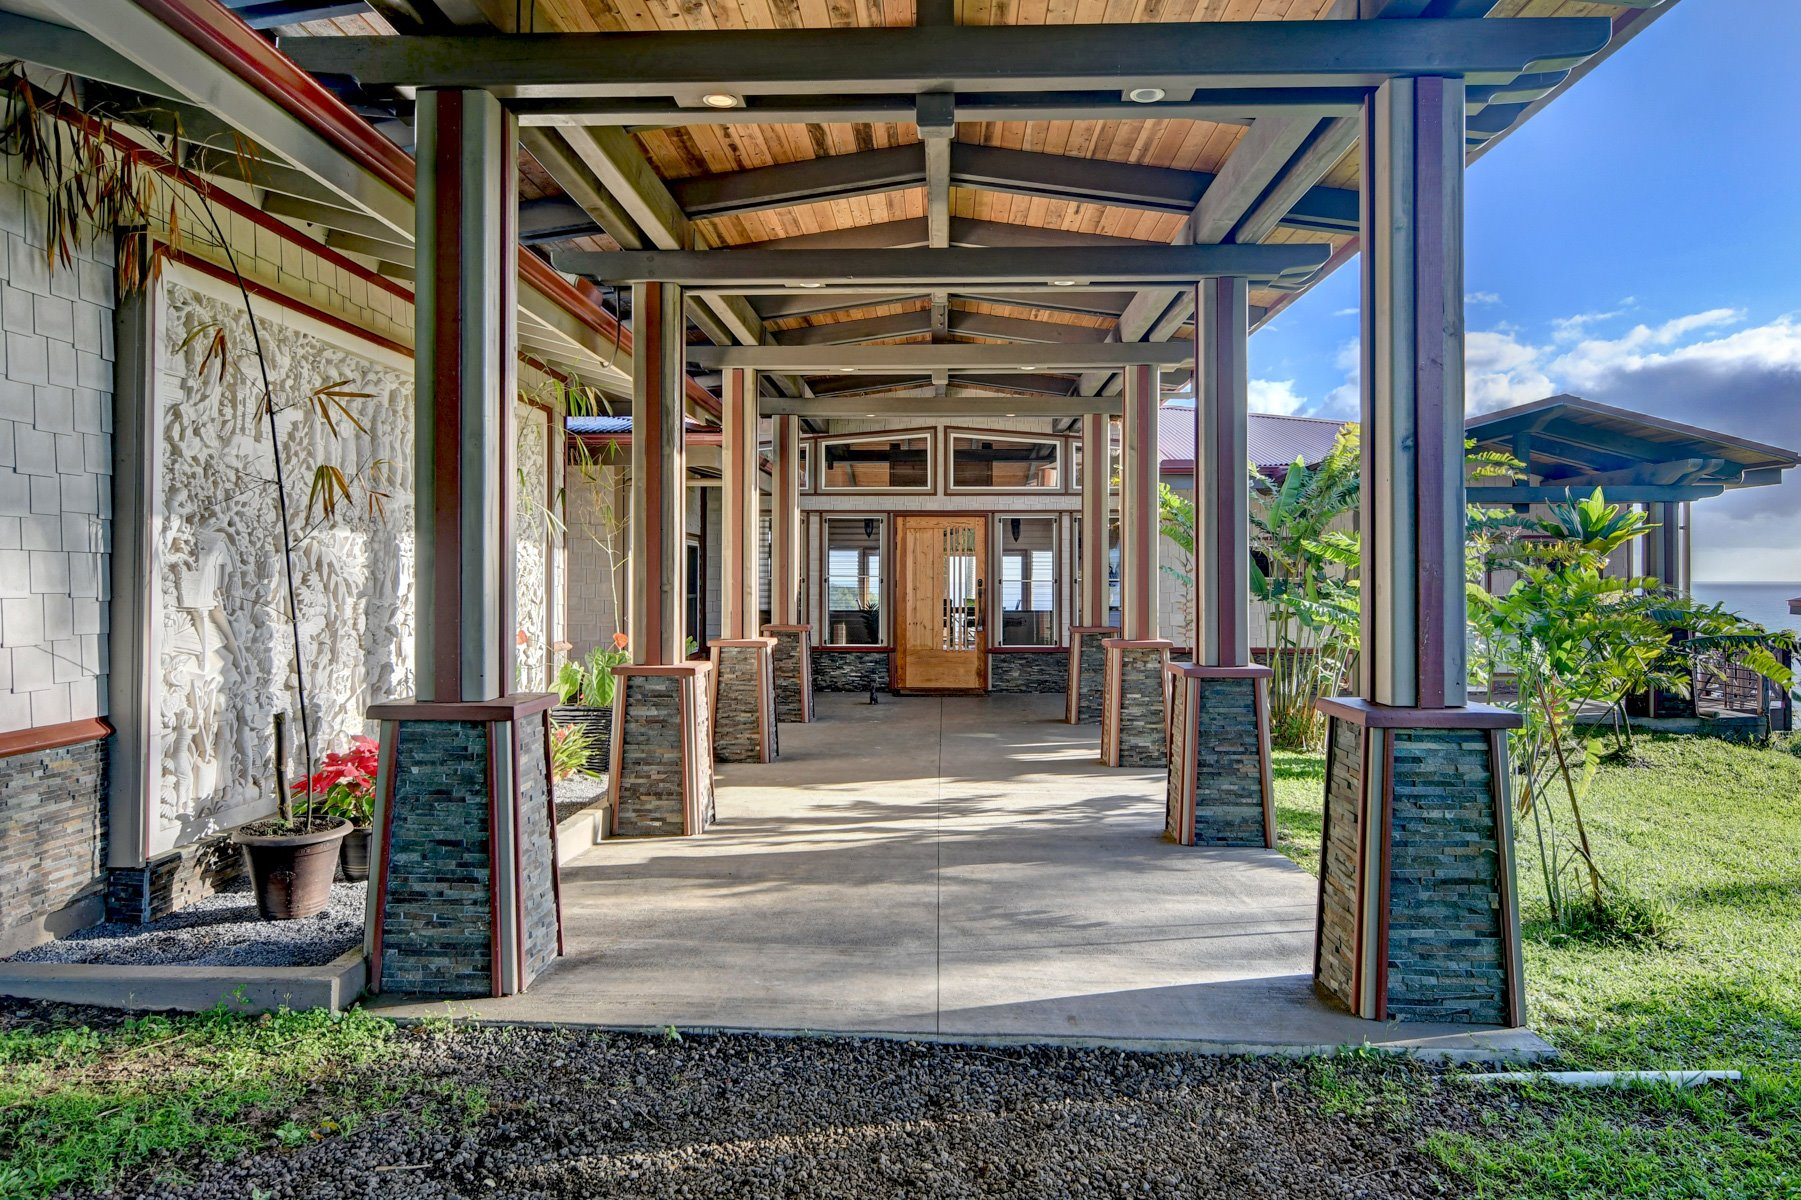 Entrance walkway into the main home as all of the entry aspects you would want in a home like this.